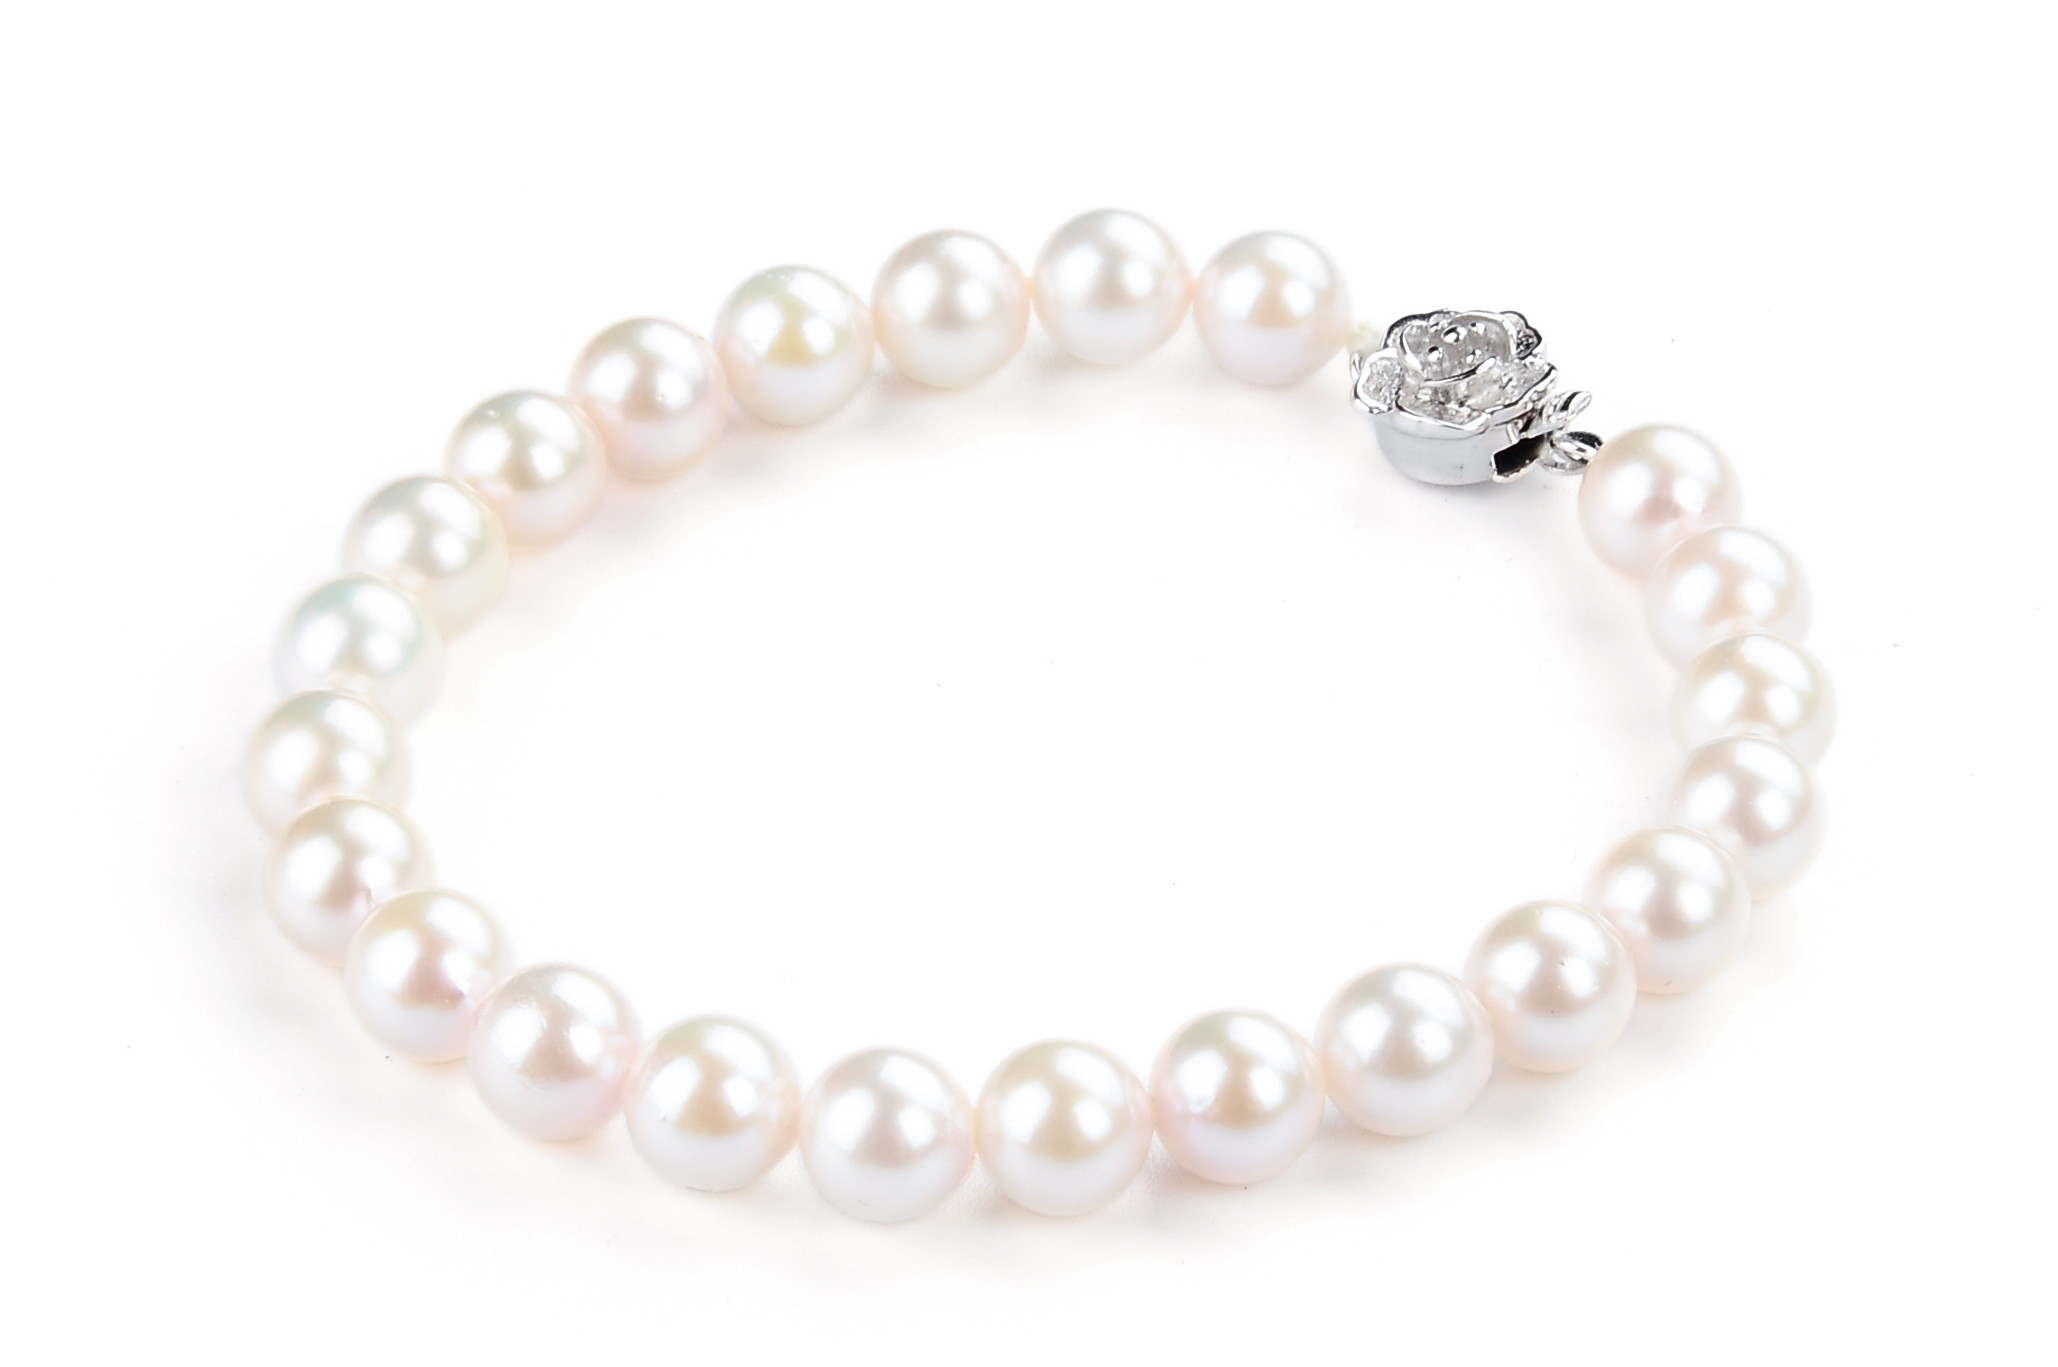 7.5 mm AAA+ White Saltwater Cultured Pearl Bracelet br1A